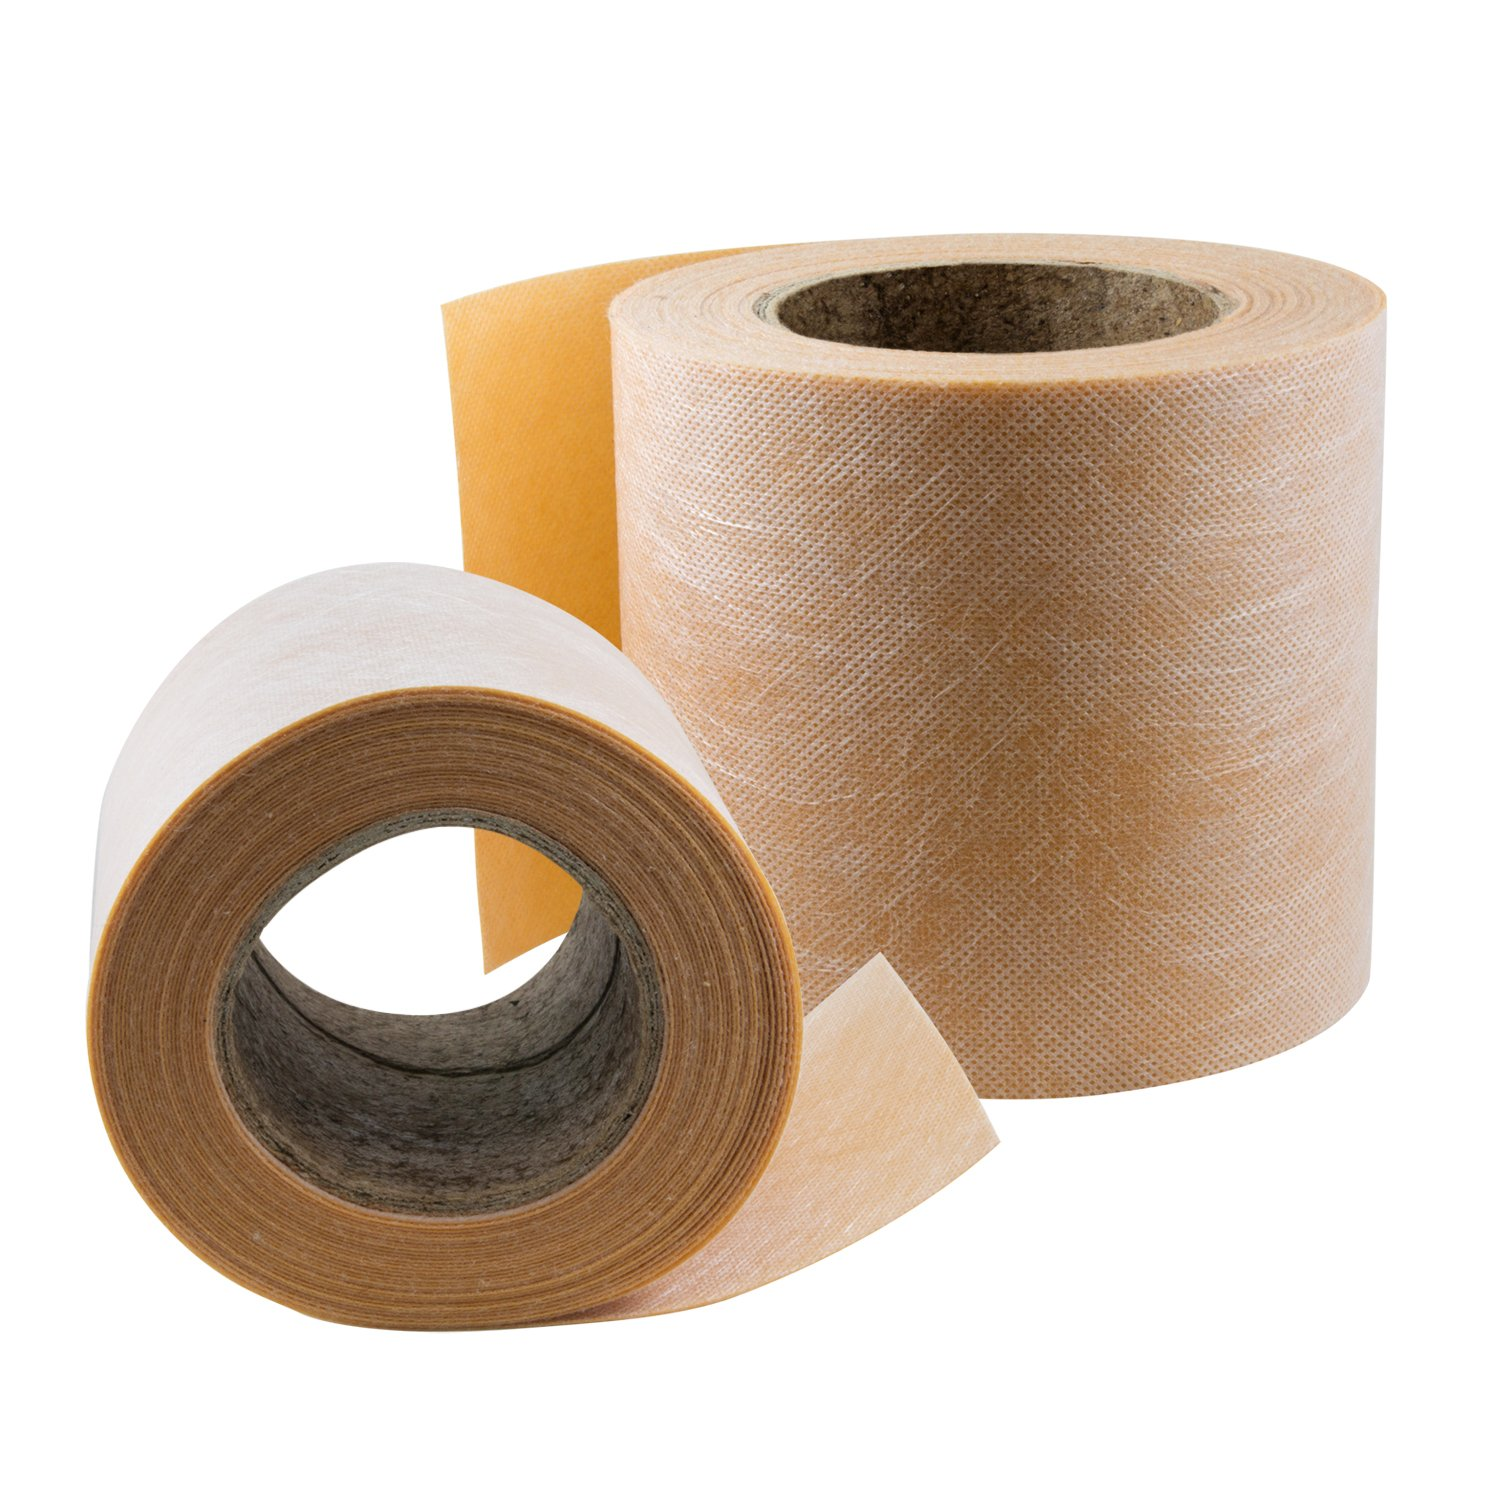 Houseables Shower Waterproofing Membrane, Floor Underlayment, 5''X33' Roll, 4MM Thick, Orange, Leak Prevention, Dry Seal Waterproof Band for Thin-Set Mortar, Tile, Bath, Steam Room